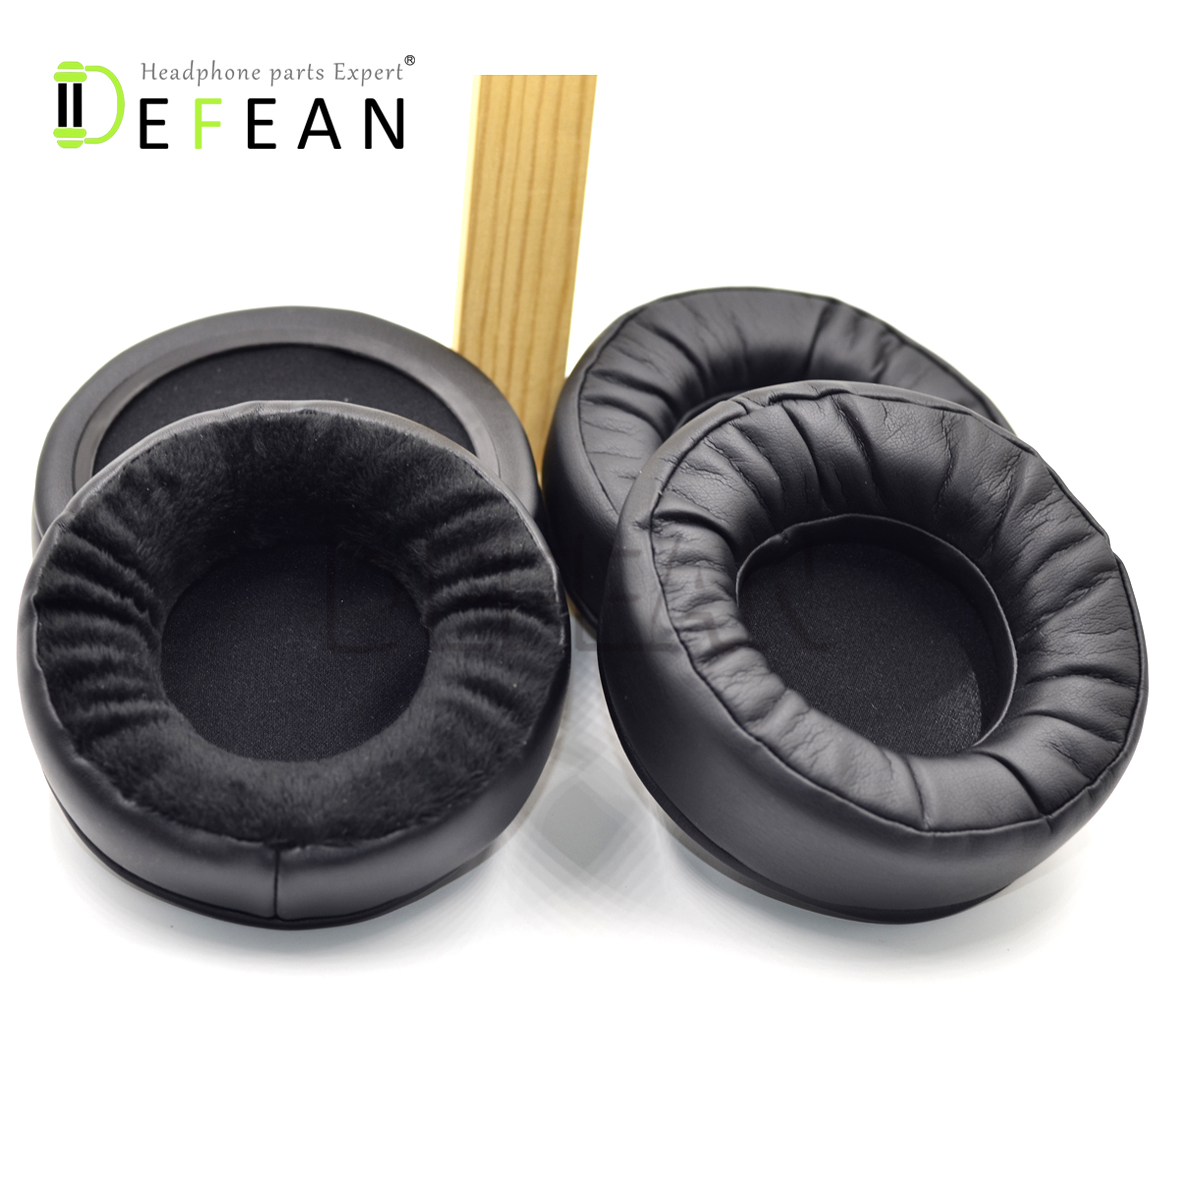 Defean Replacement Ear pads cushion for Razer ManO'War